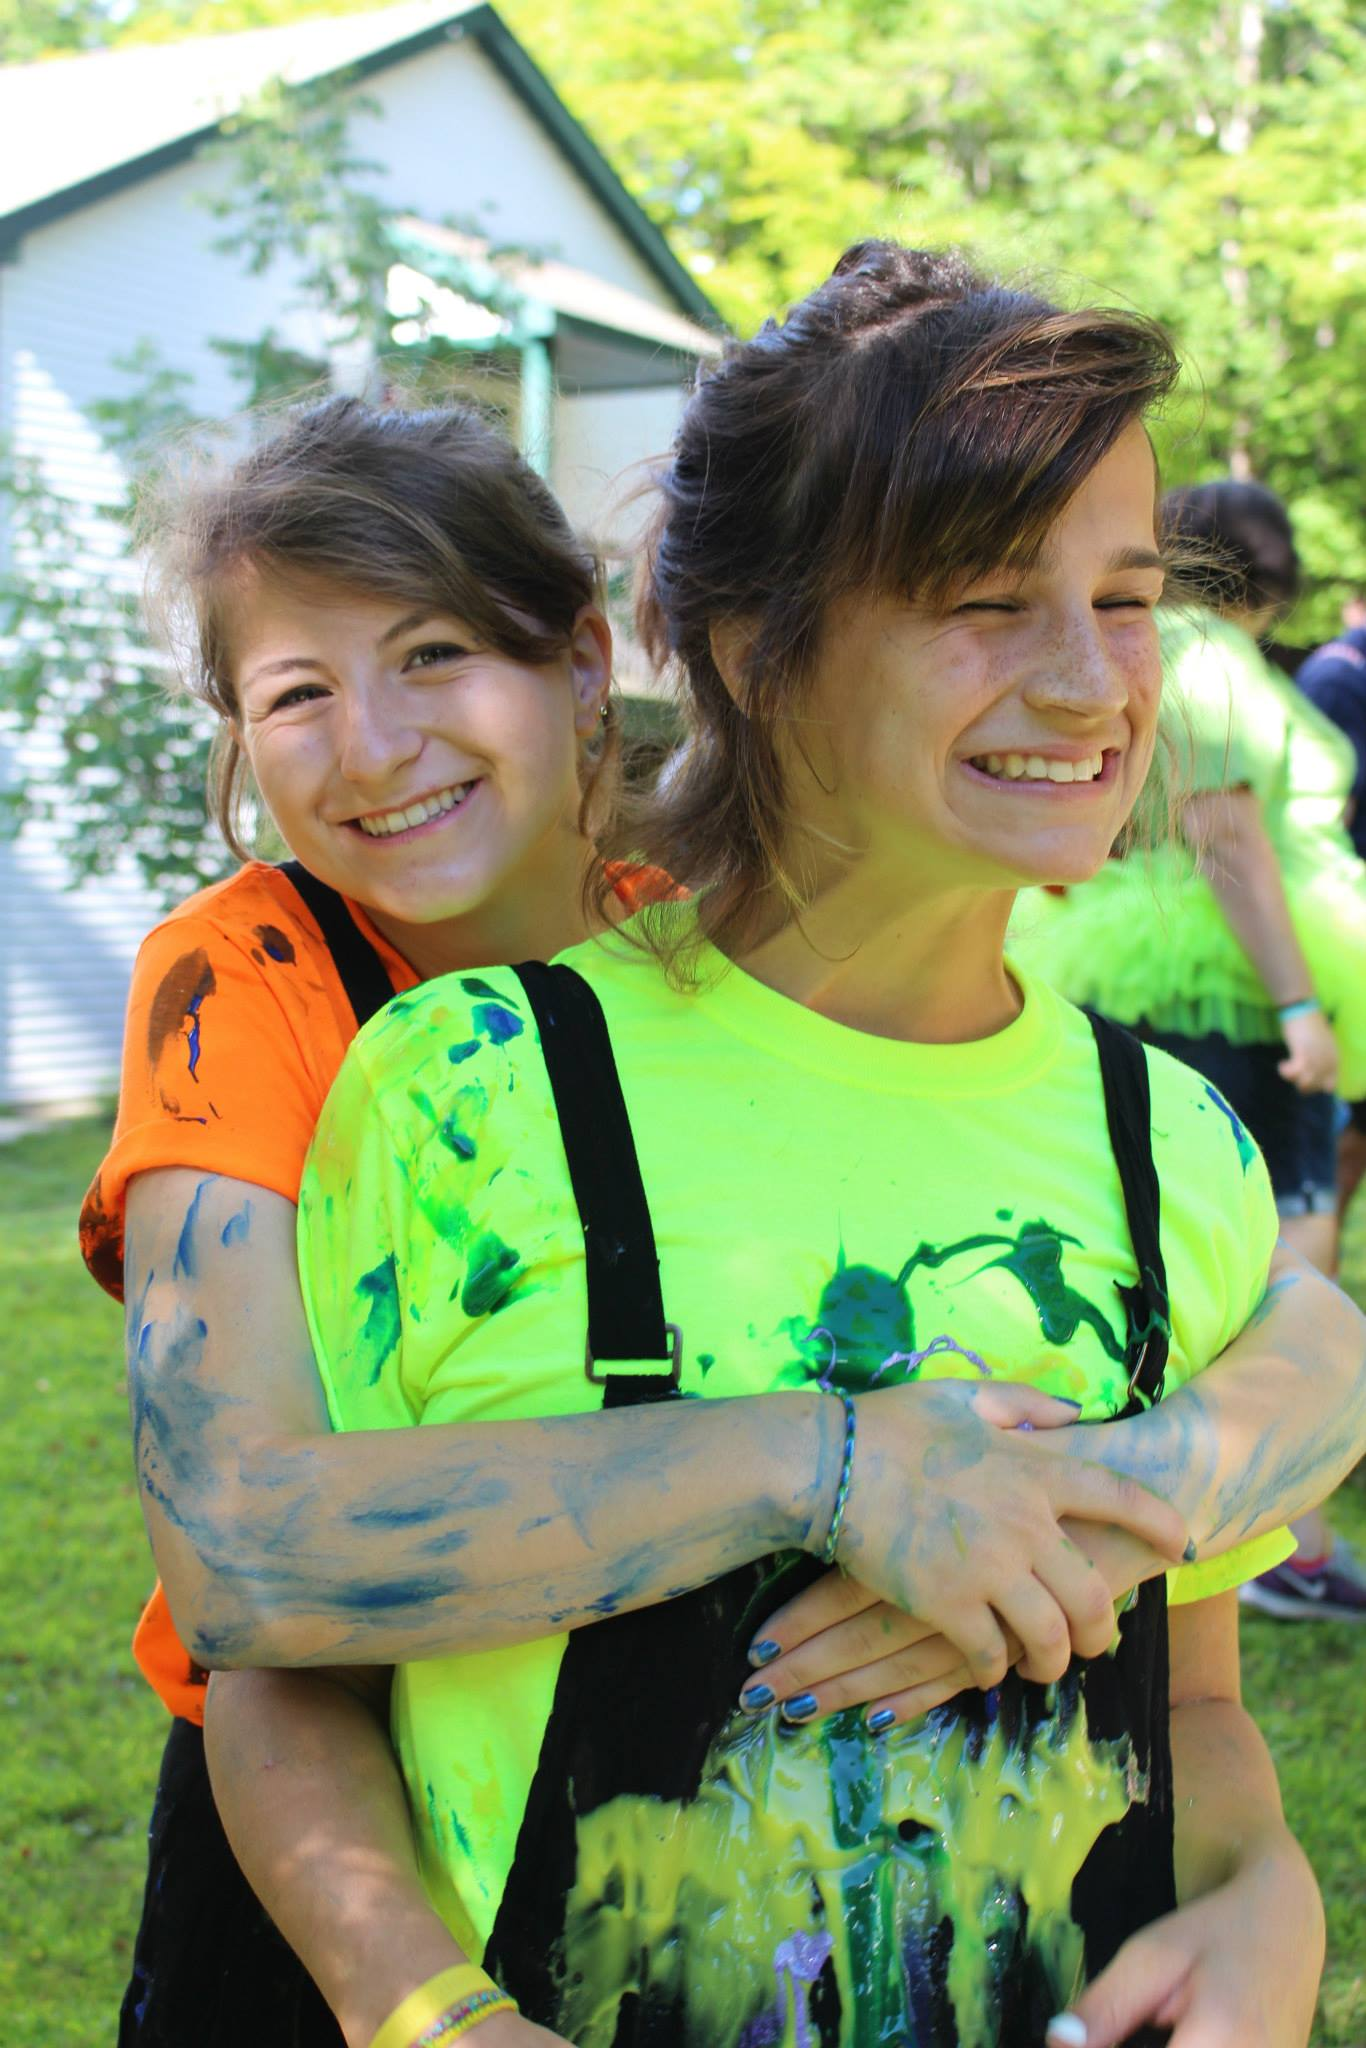 Coral (left) with camper Ellen, smiling after allowing the other campers to decorate their costumes with paint-filled balloons